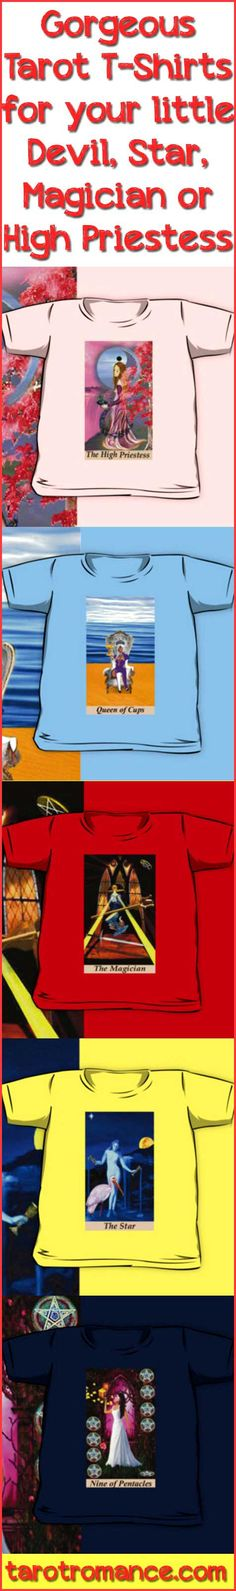 Children's Tarot T-Shirts for your little Devil, Star or High Priestess!